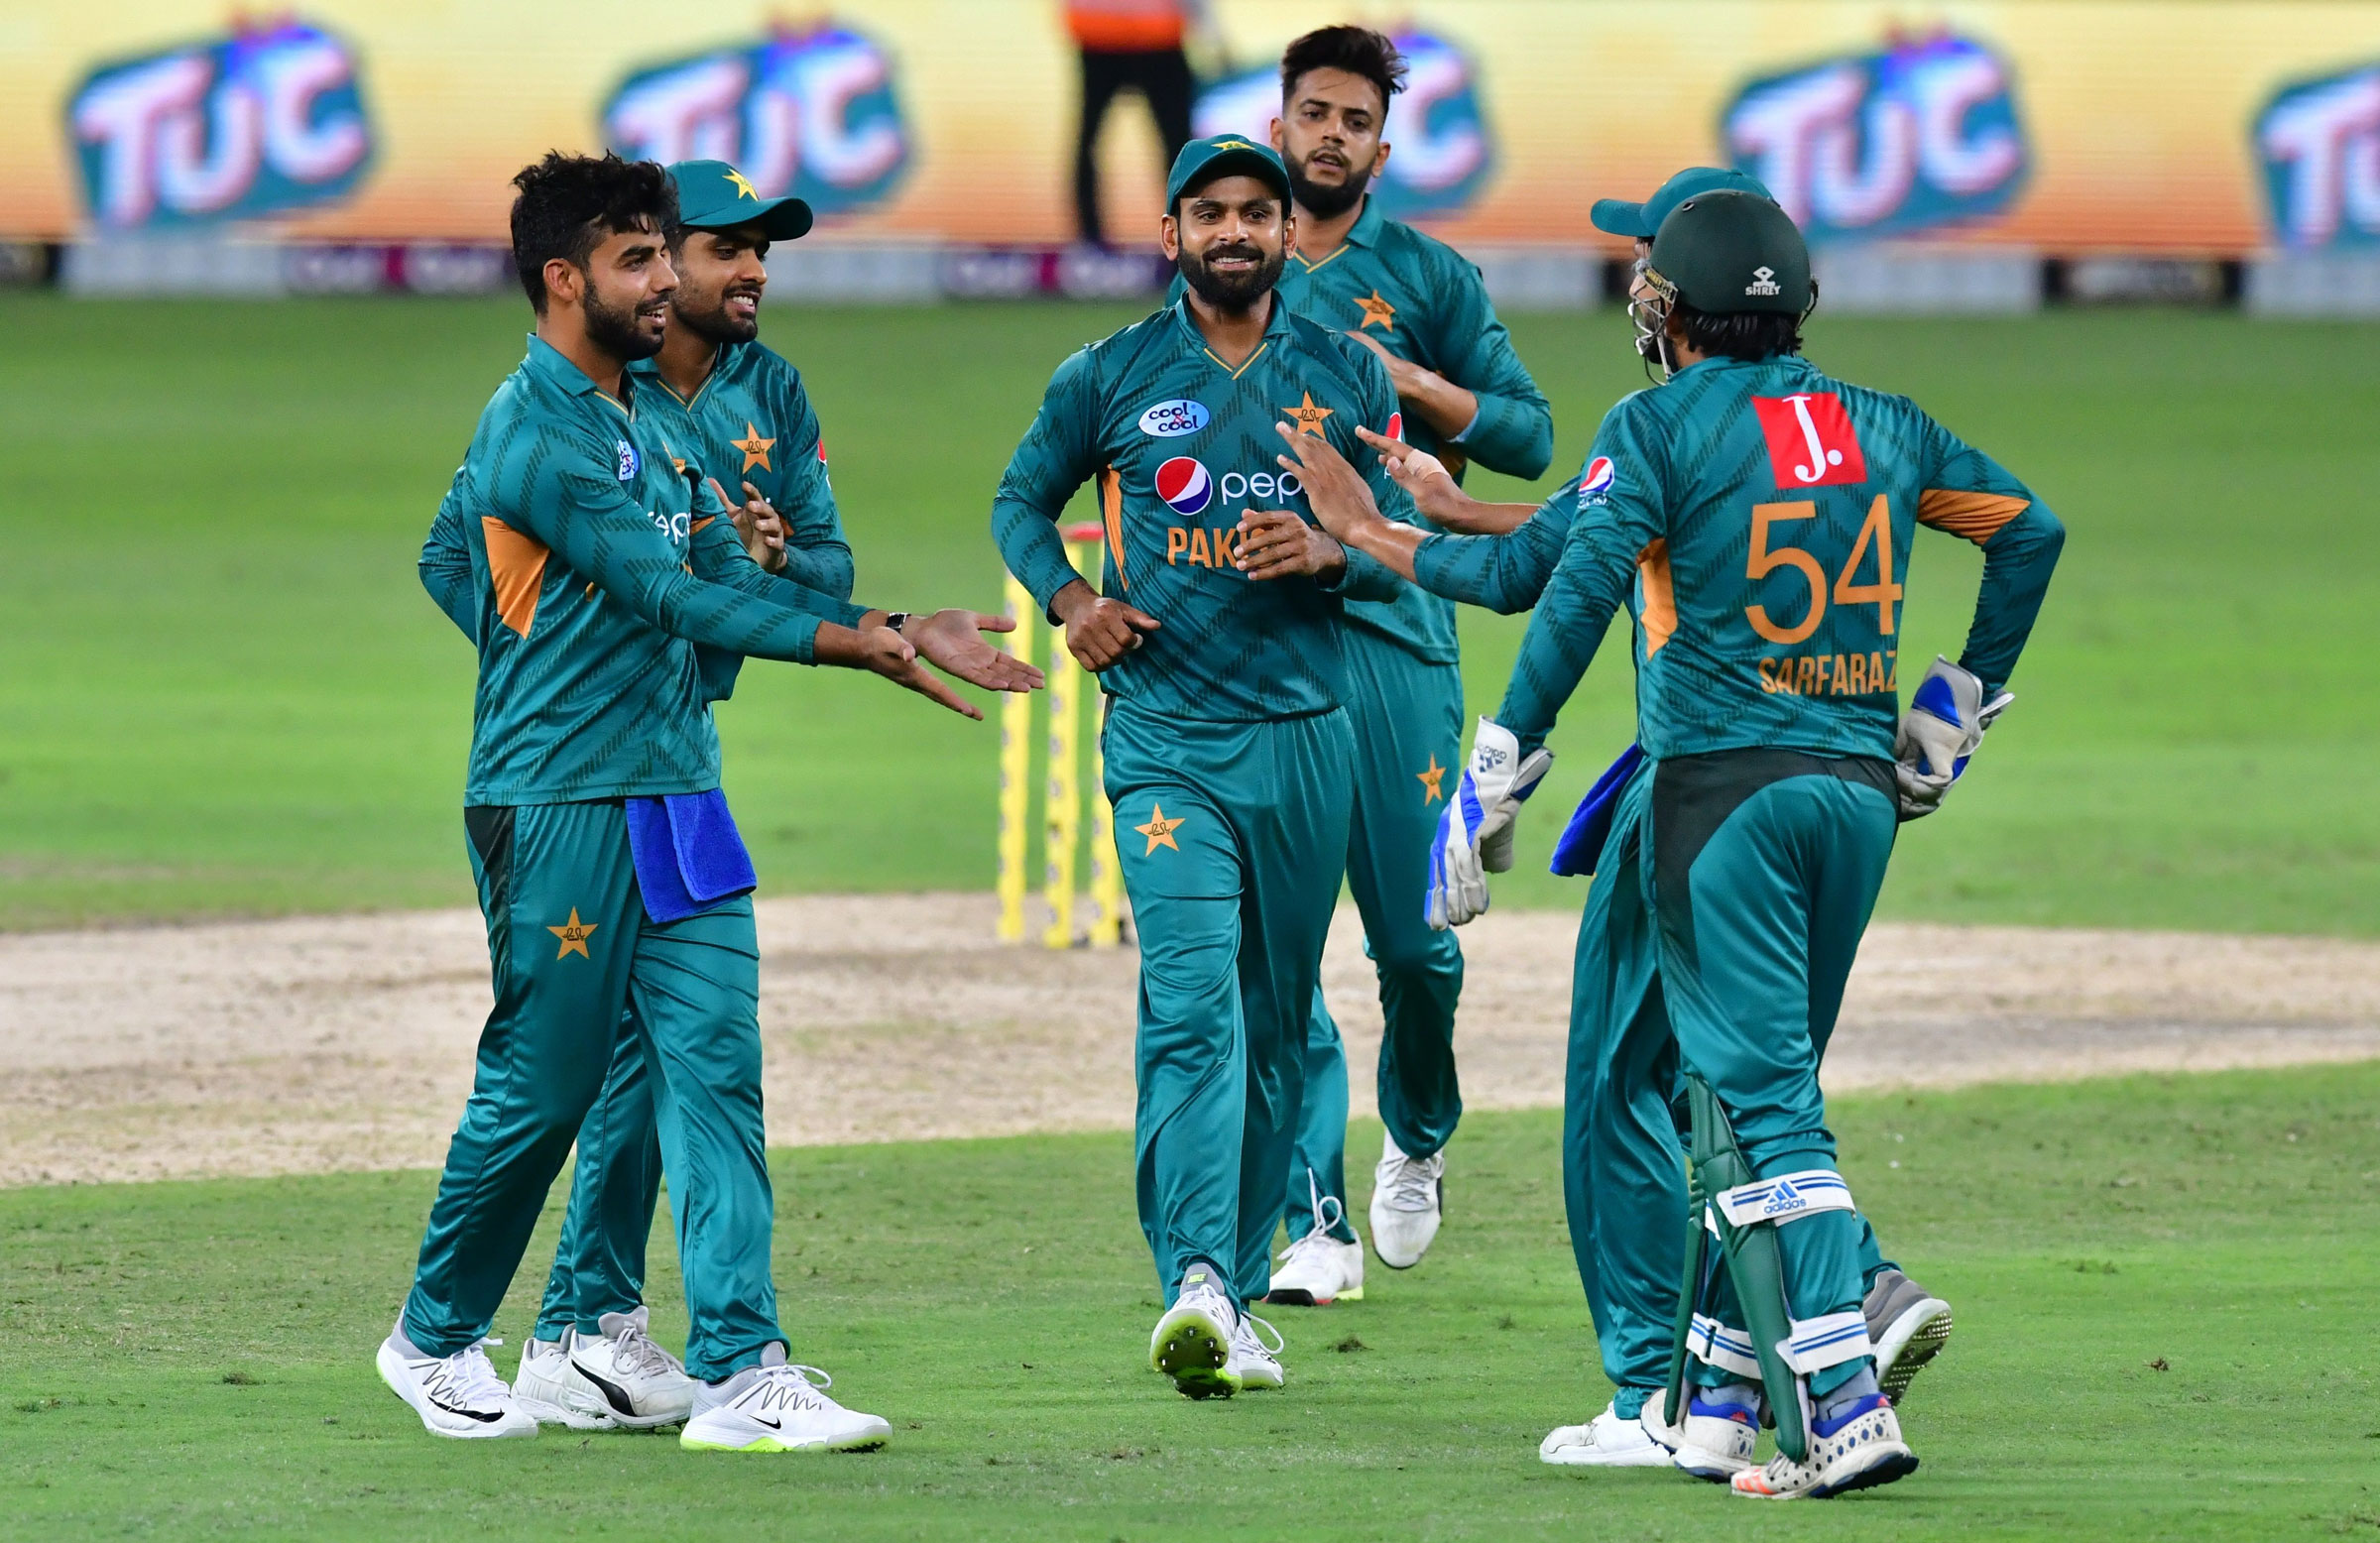 Pakistan's bowlers proved very reliable // Getty Images